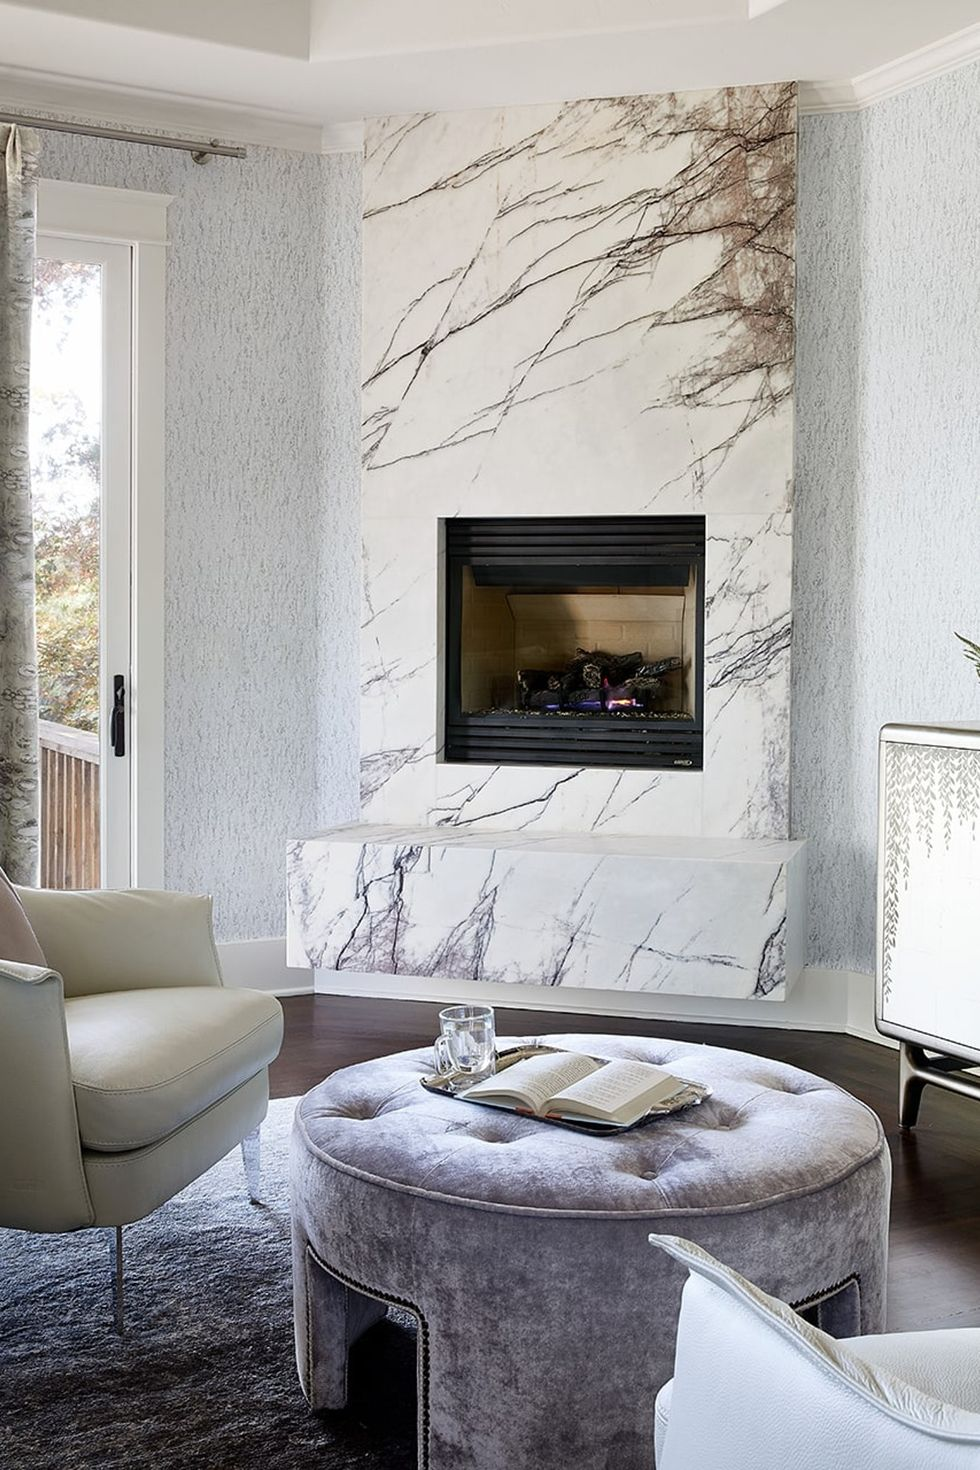 Tiles Design For Living Room Wall: Striking Fireplace Design Ideas To Take Your Home To The